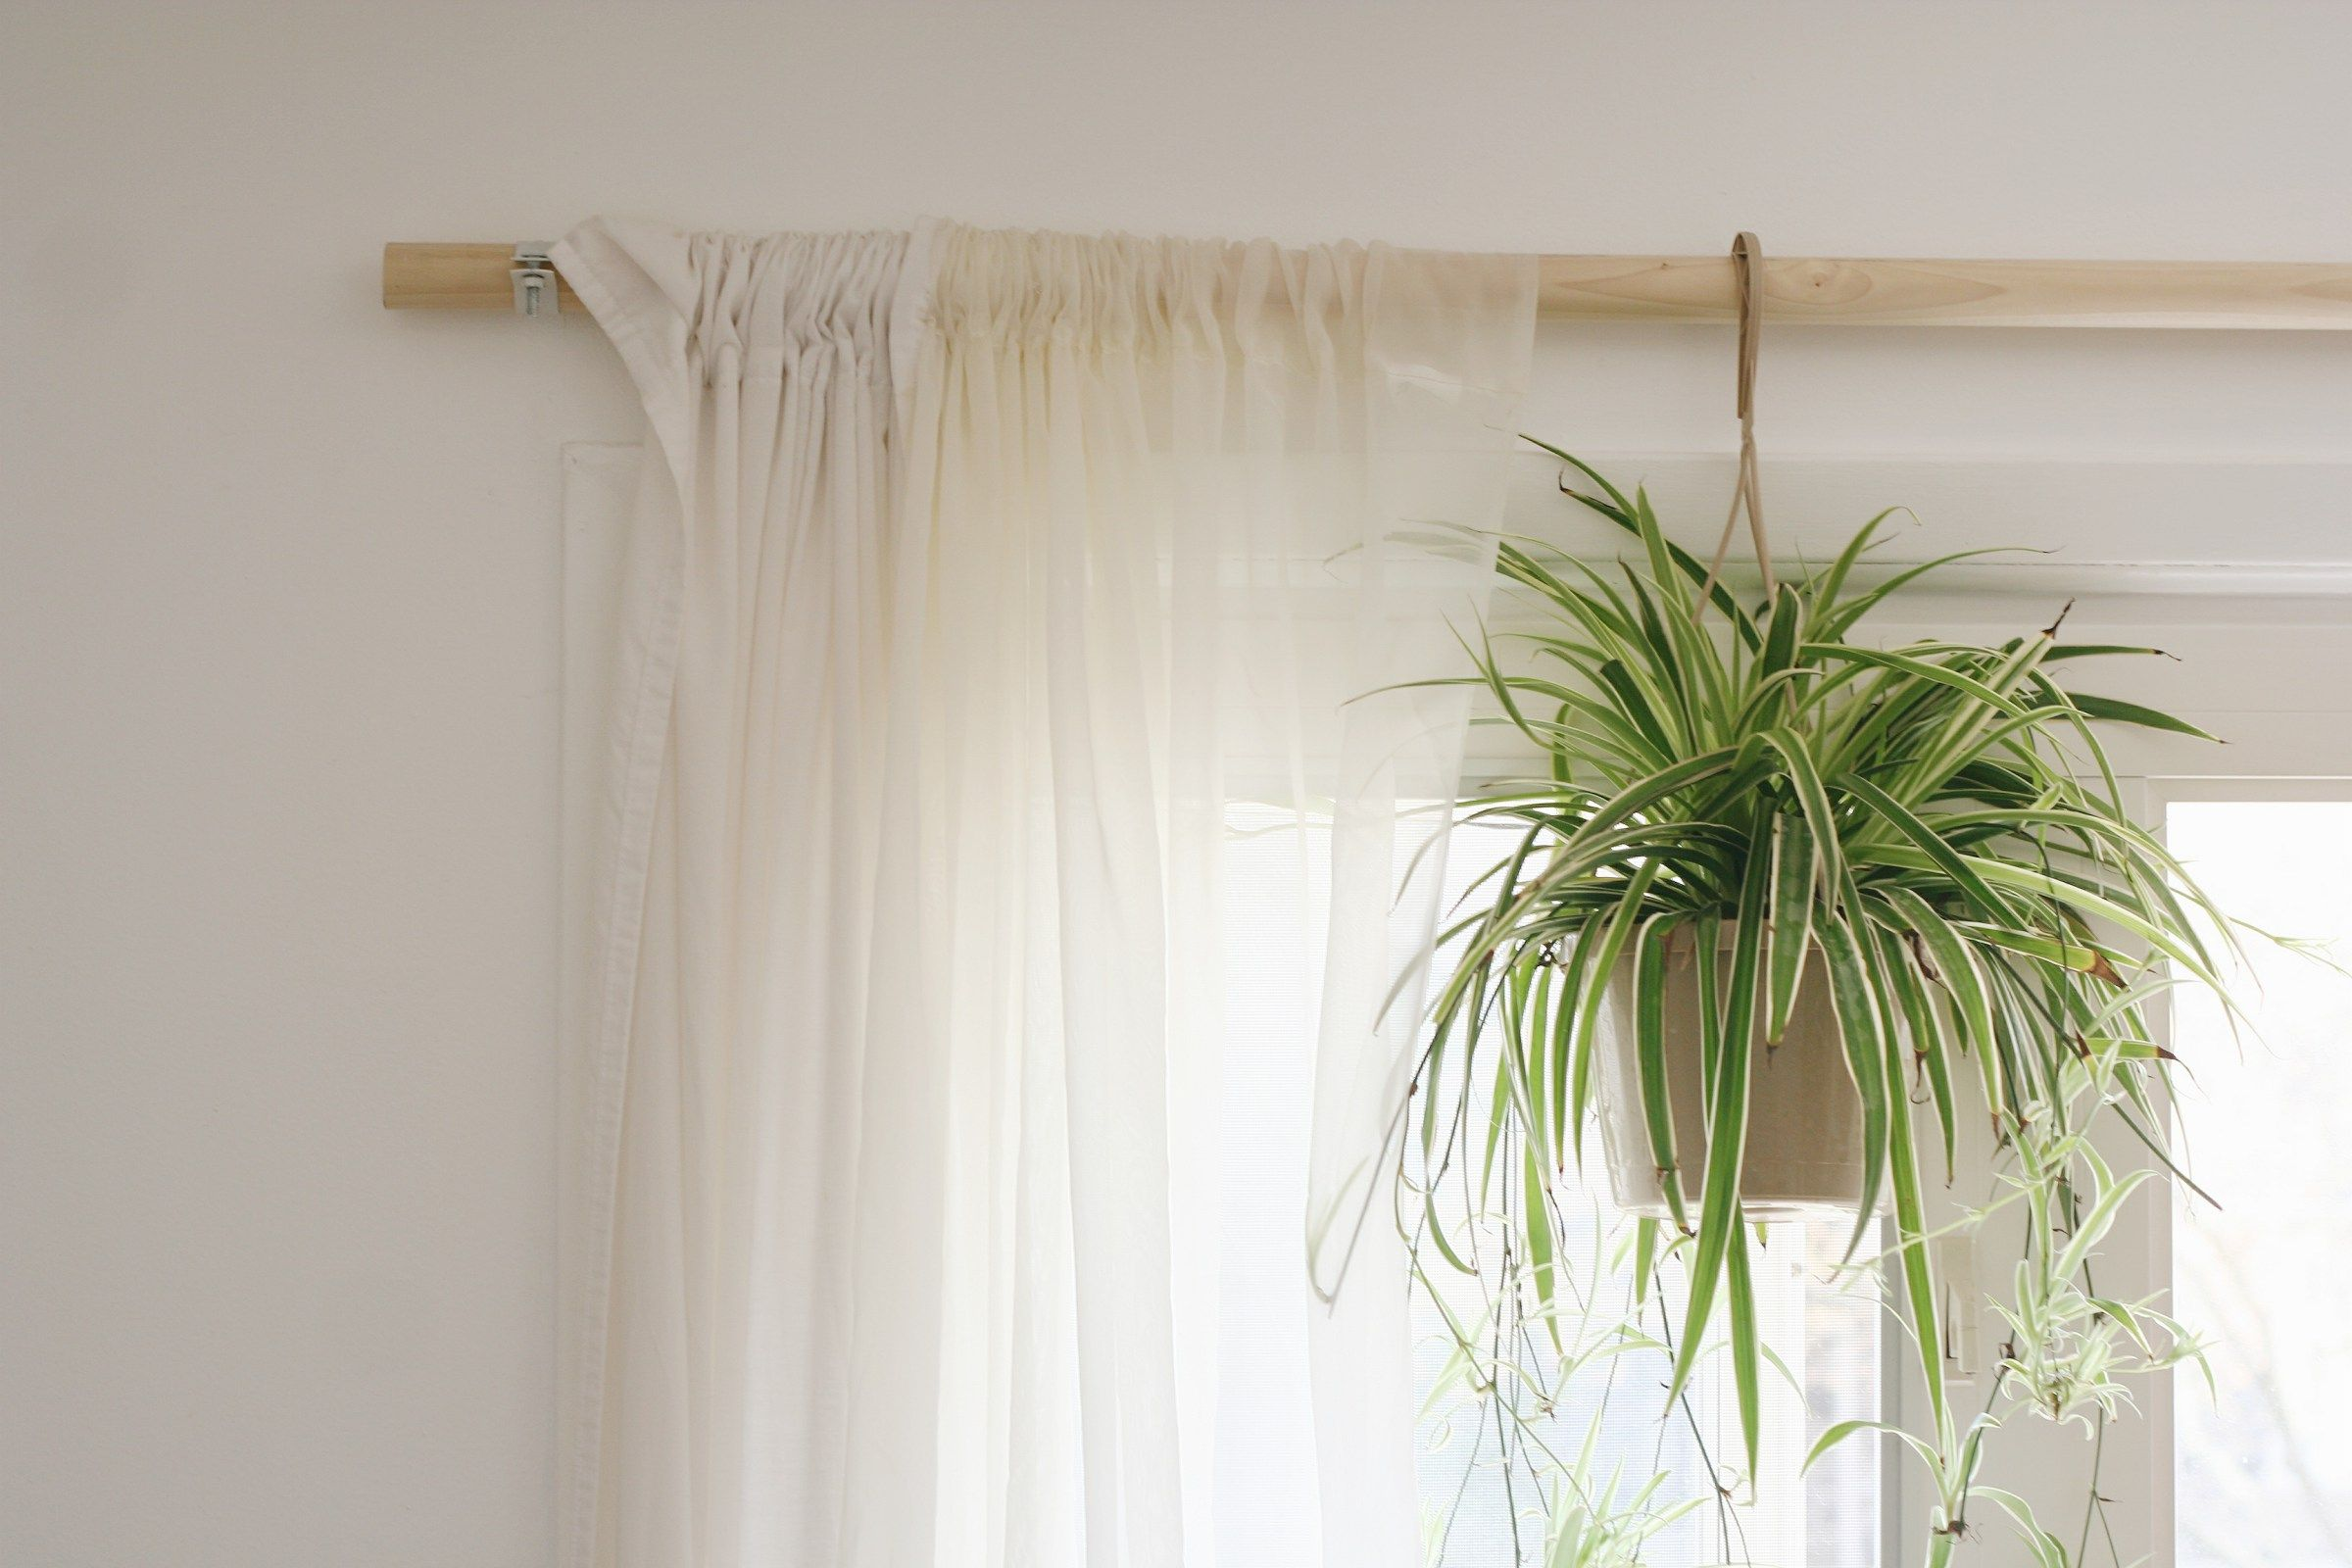 Diy Wooden Curtain Rod Wooden Curtain Rods Curtains Diy